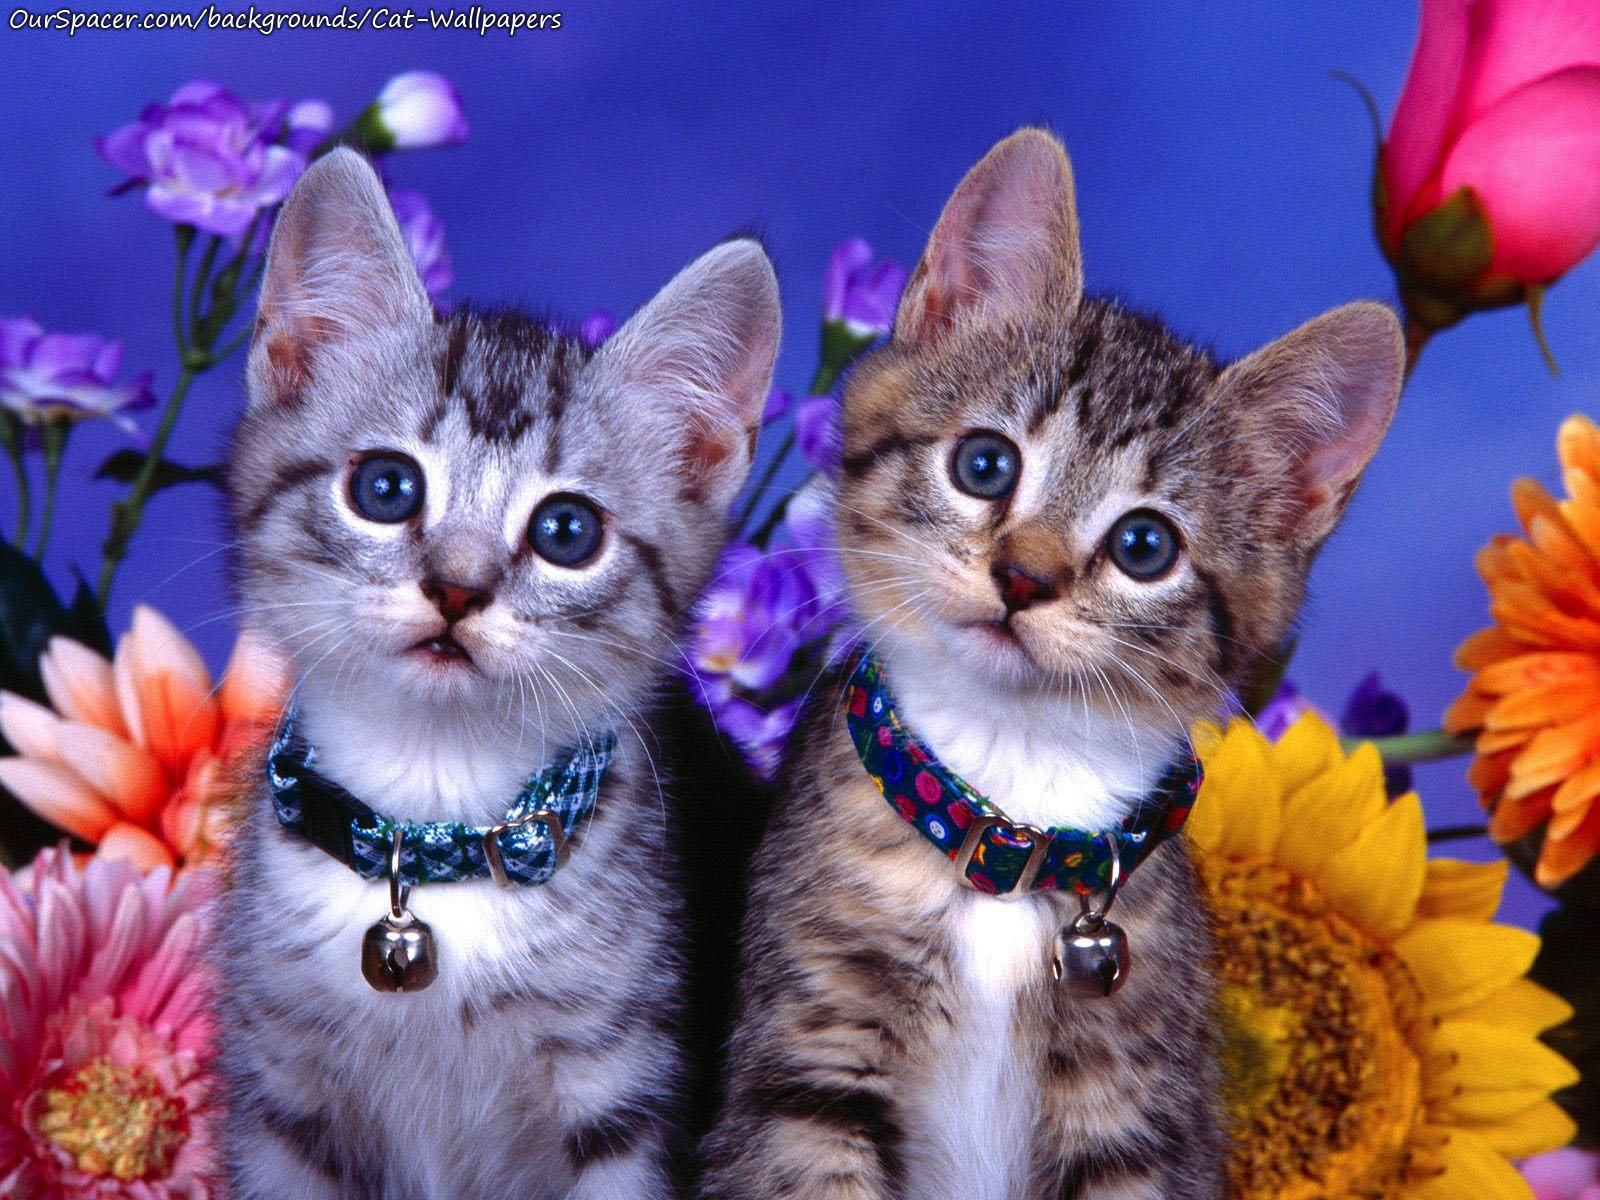 Two cats with jingle bells on their necks wallpapers for myspace, twitter, and hi5 backgrounds